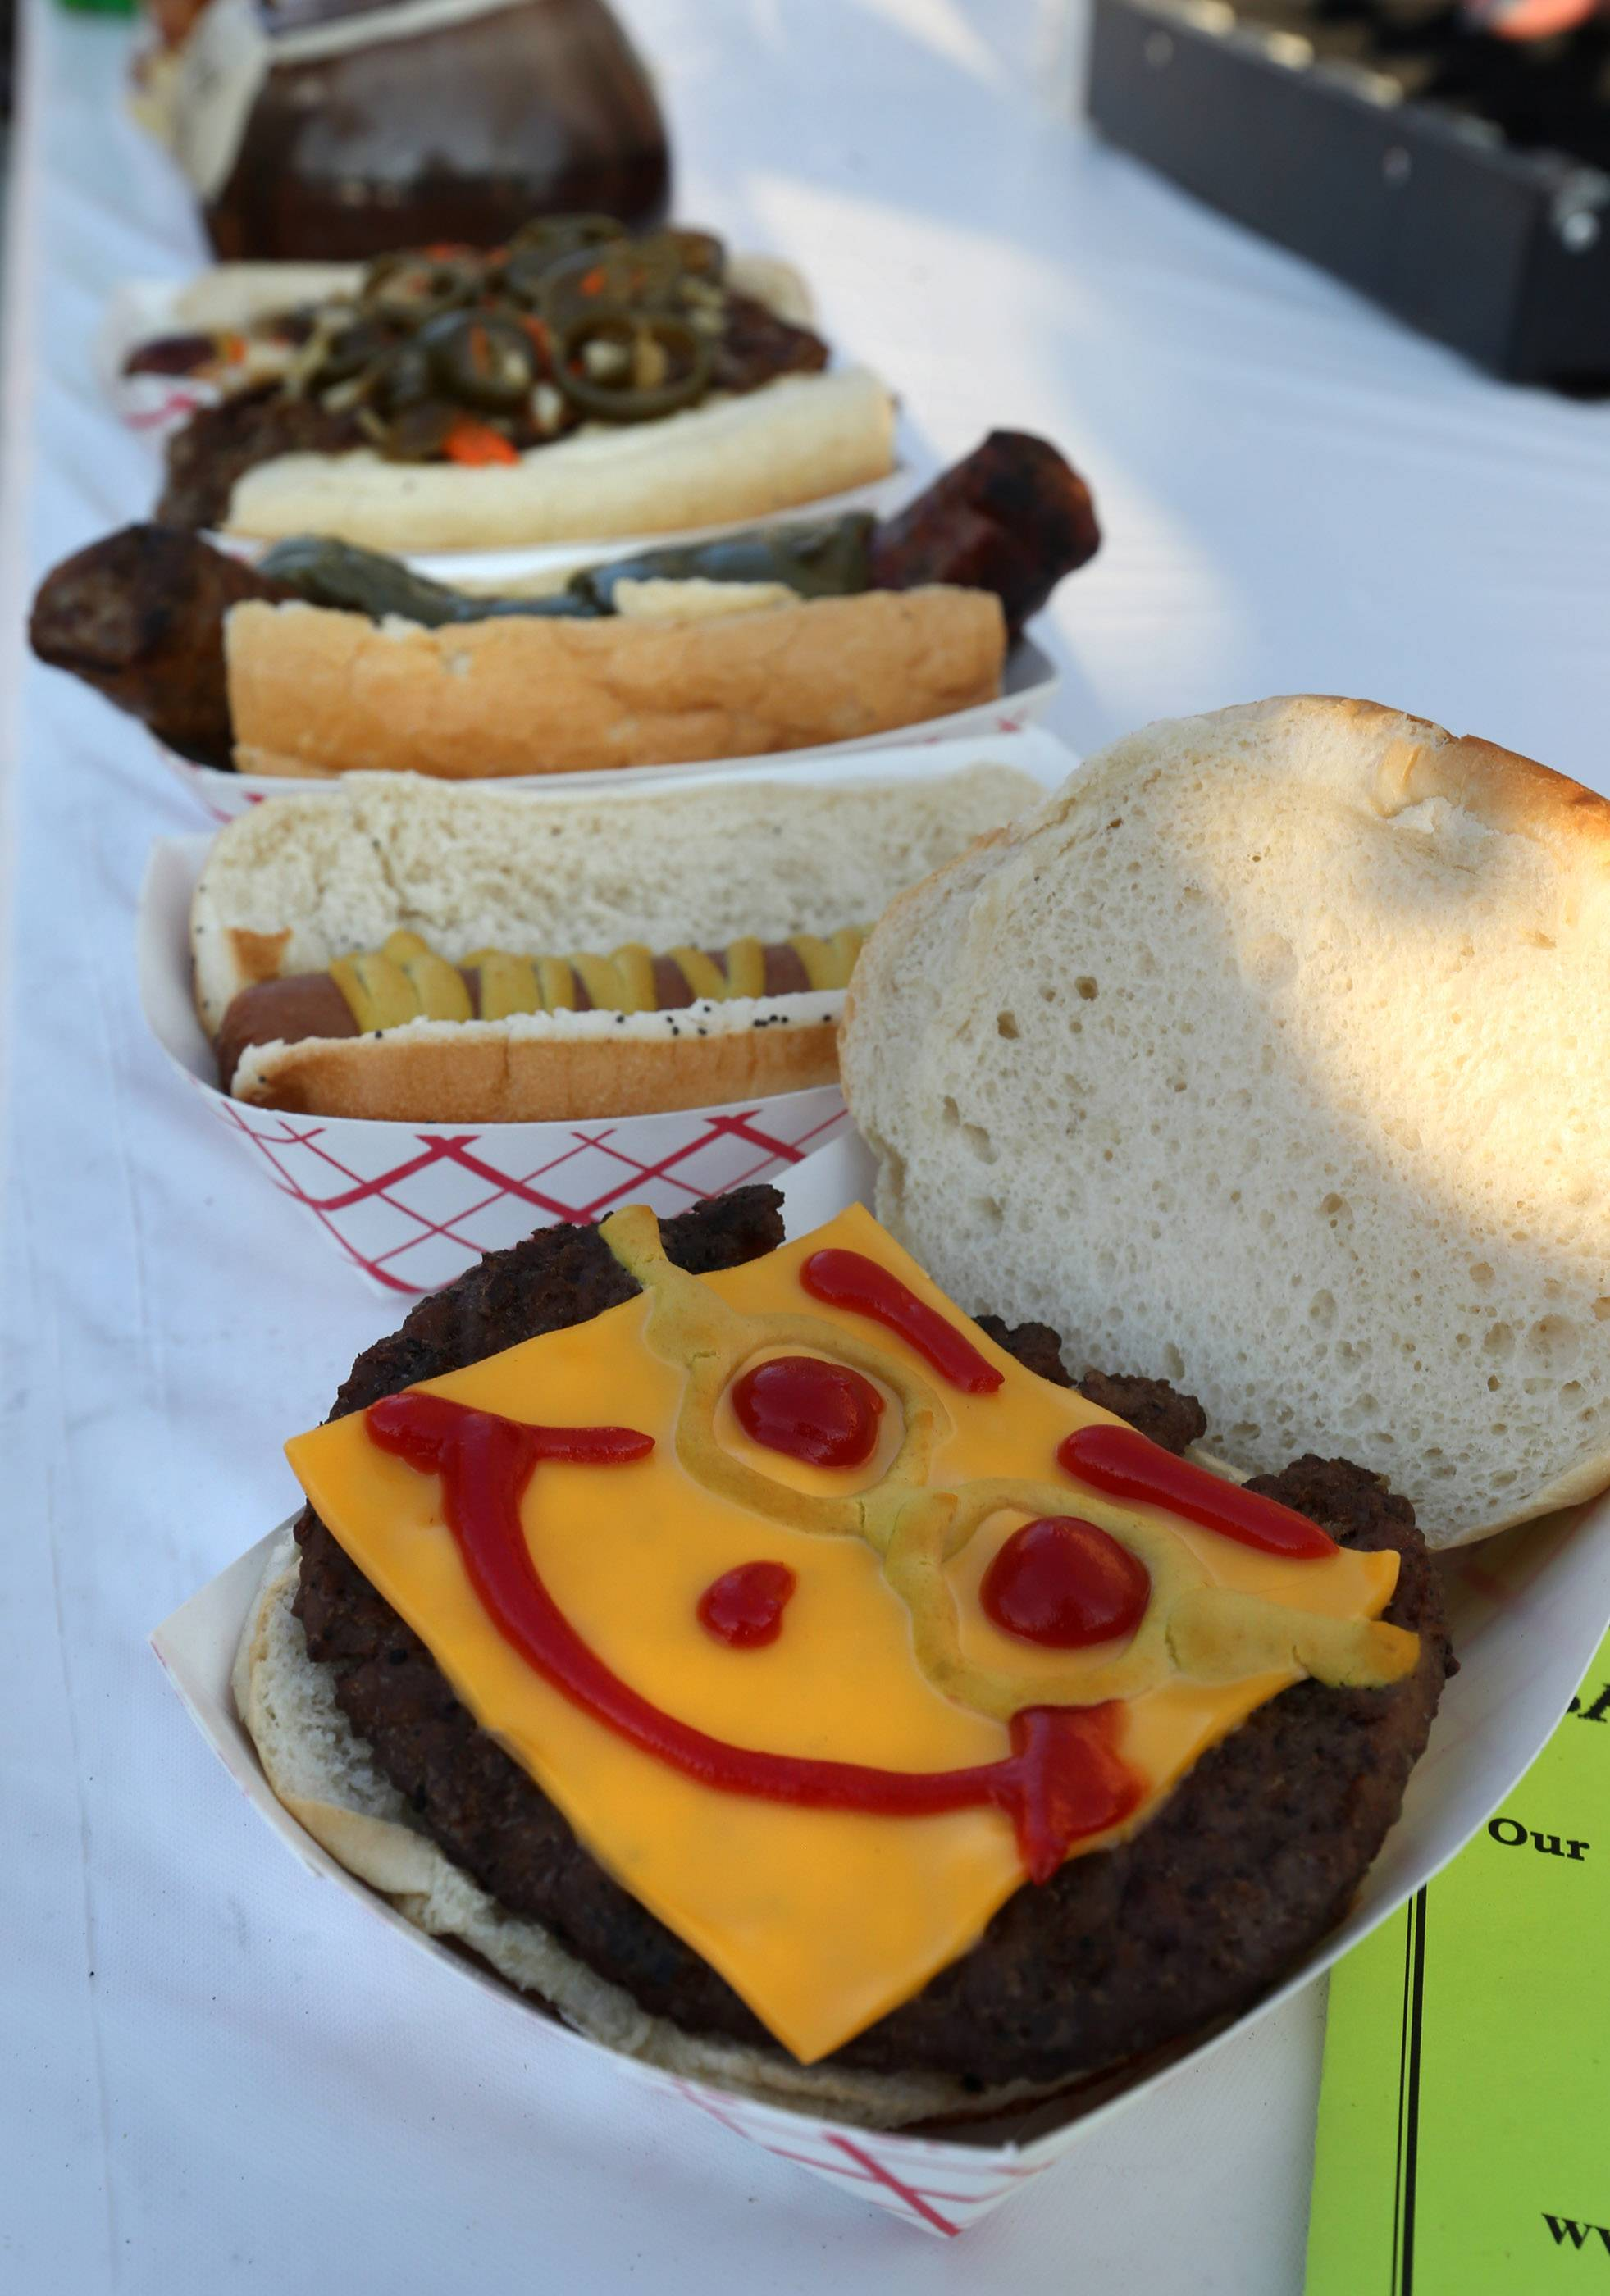 A hamburger at the Luke's of Mundelein food booth reflects the festive flavor of Grayslake Summer Days.